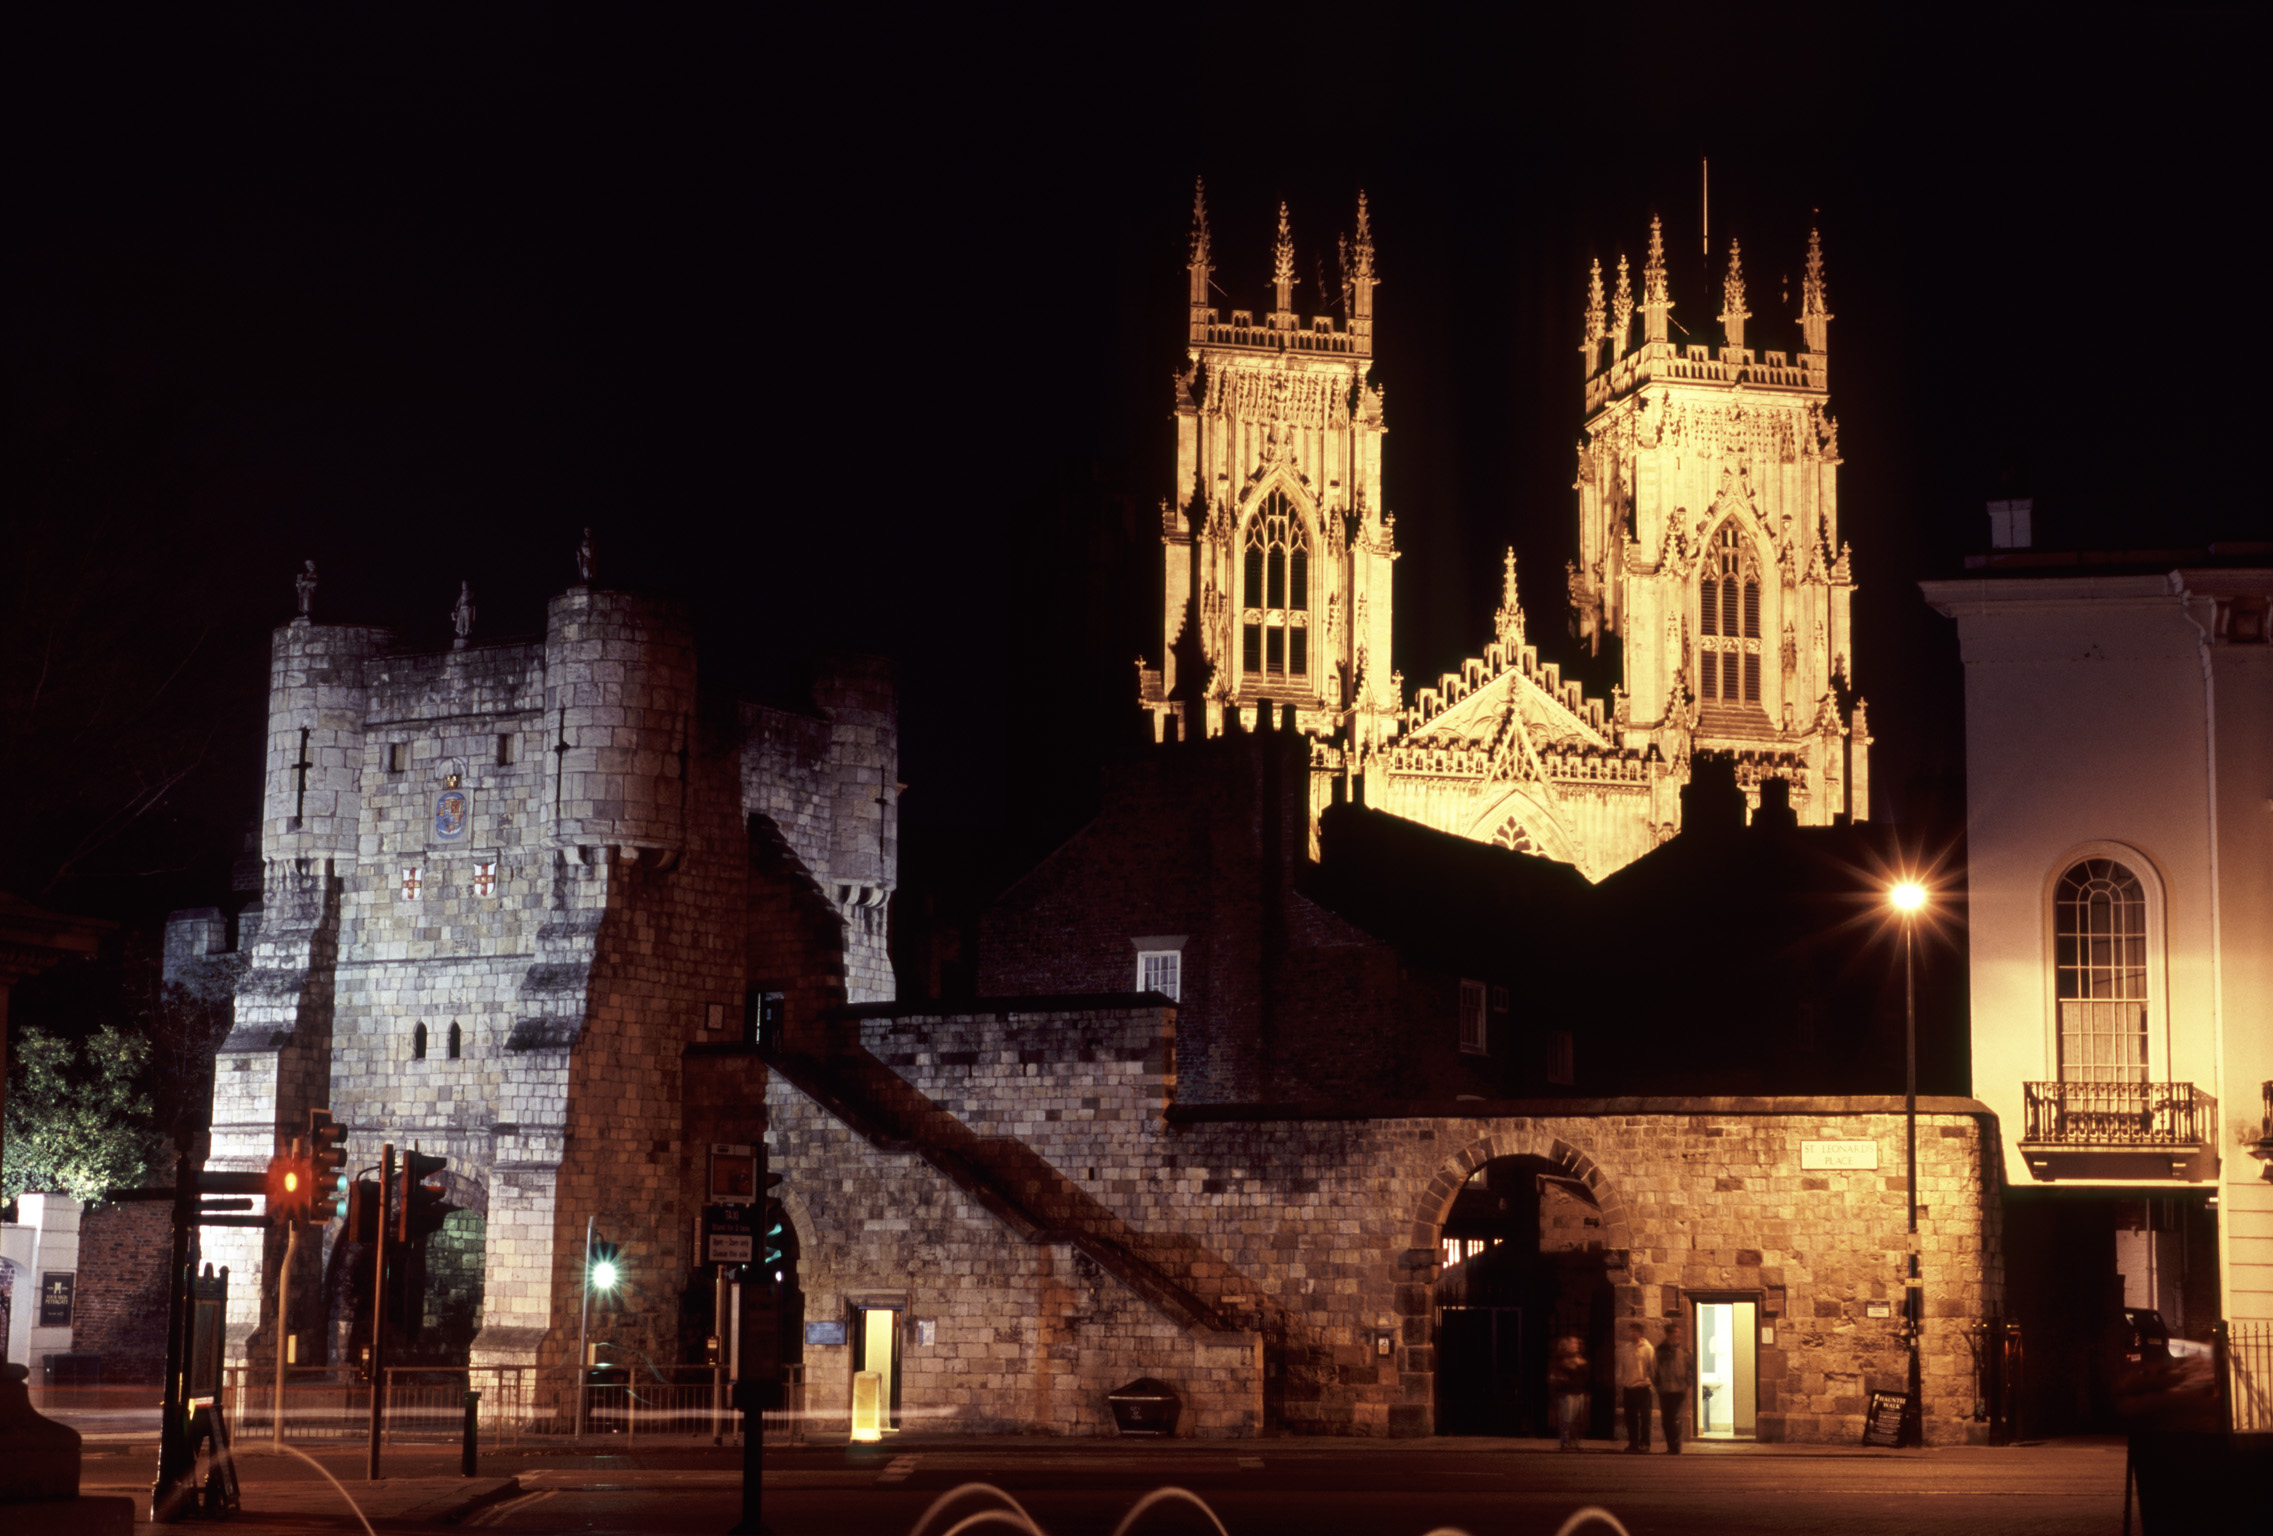 Bootham Bar will be the entrance and exit for the new evening walks along the city walls.